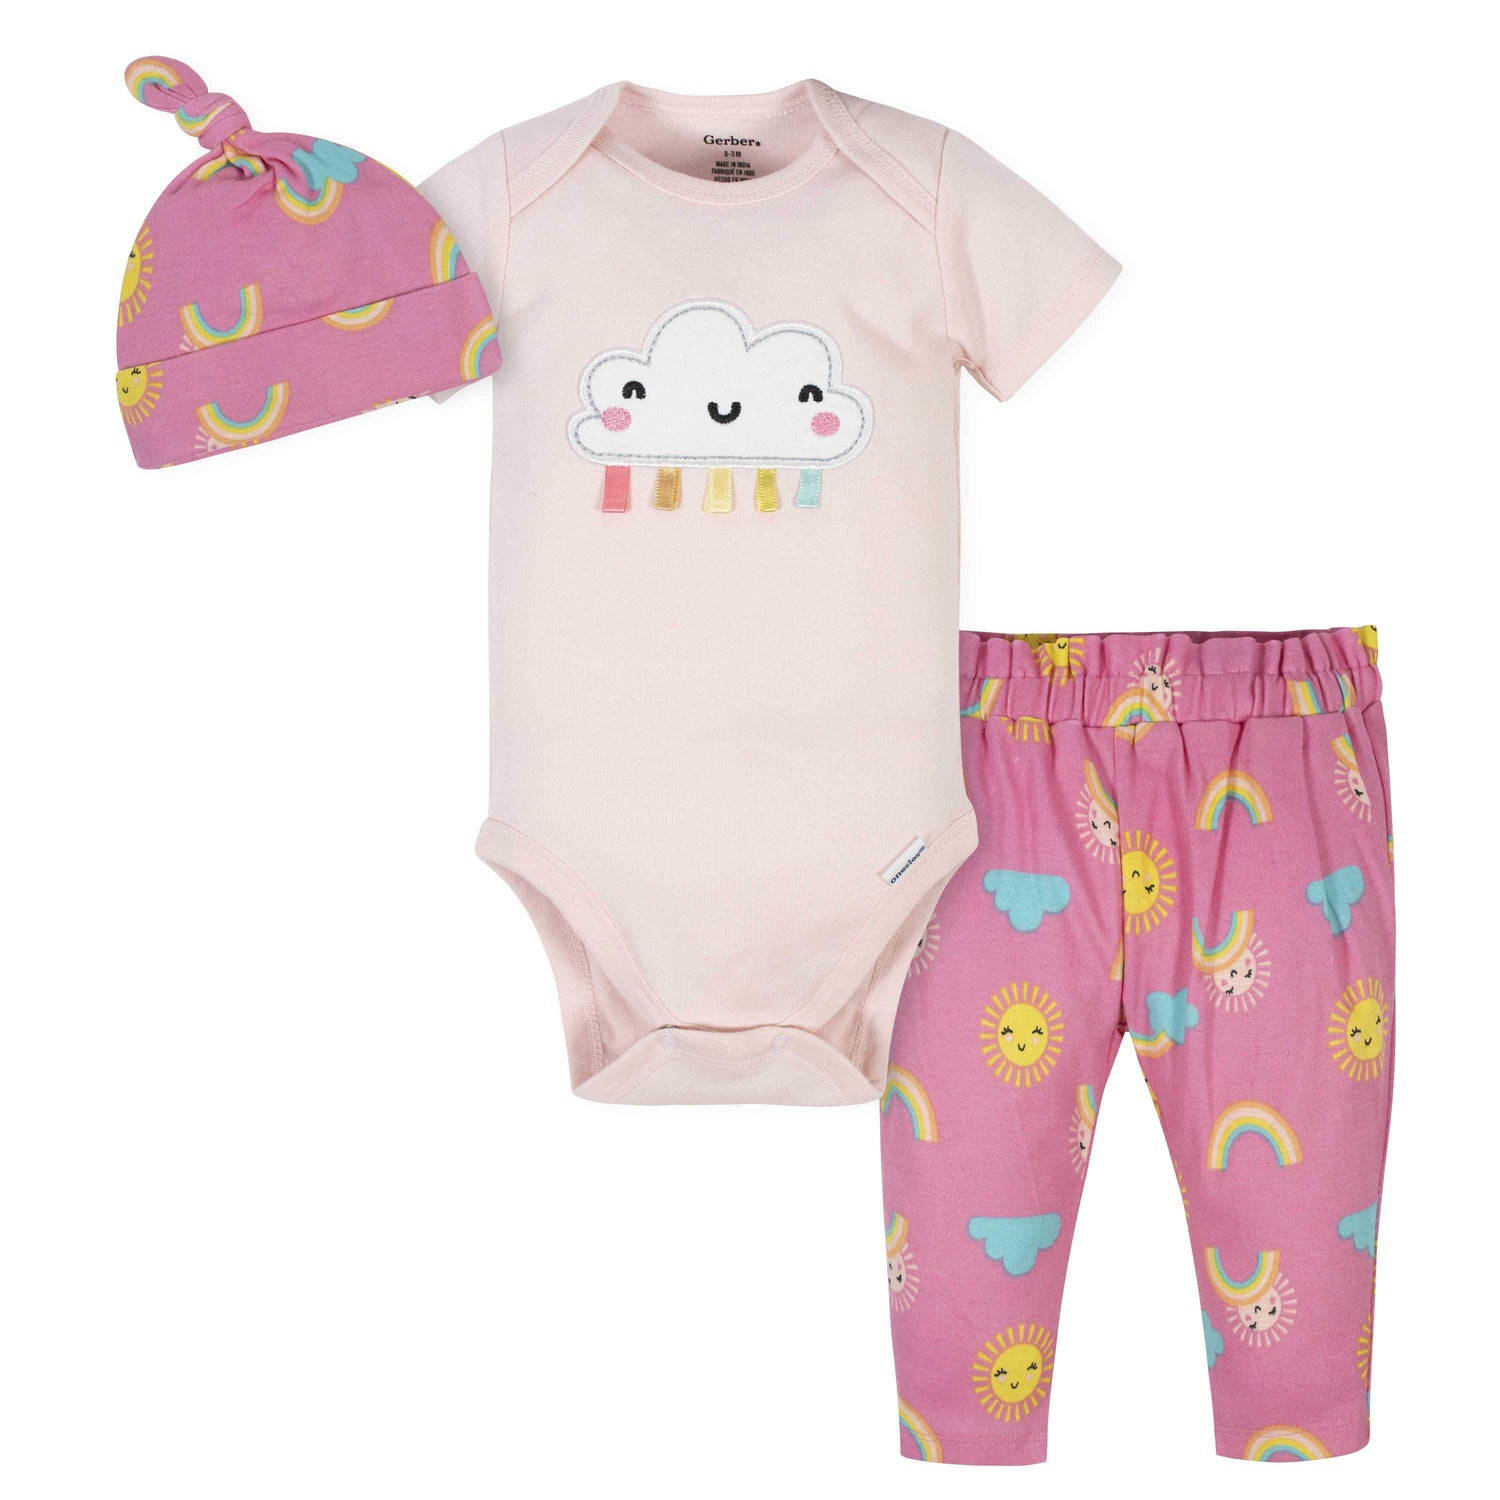 Pants and Cap Baby Shower Gift Baby Clothes GERBER BABY GIRL 3-Piece Set Onesie